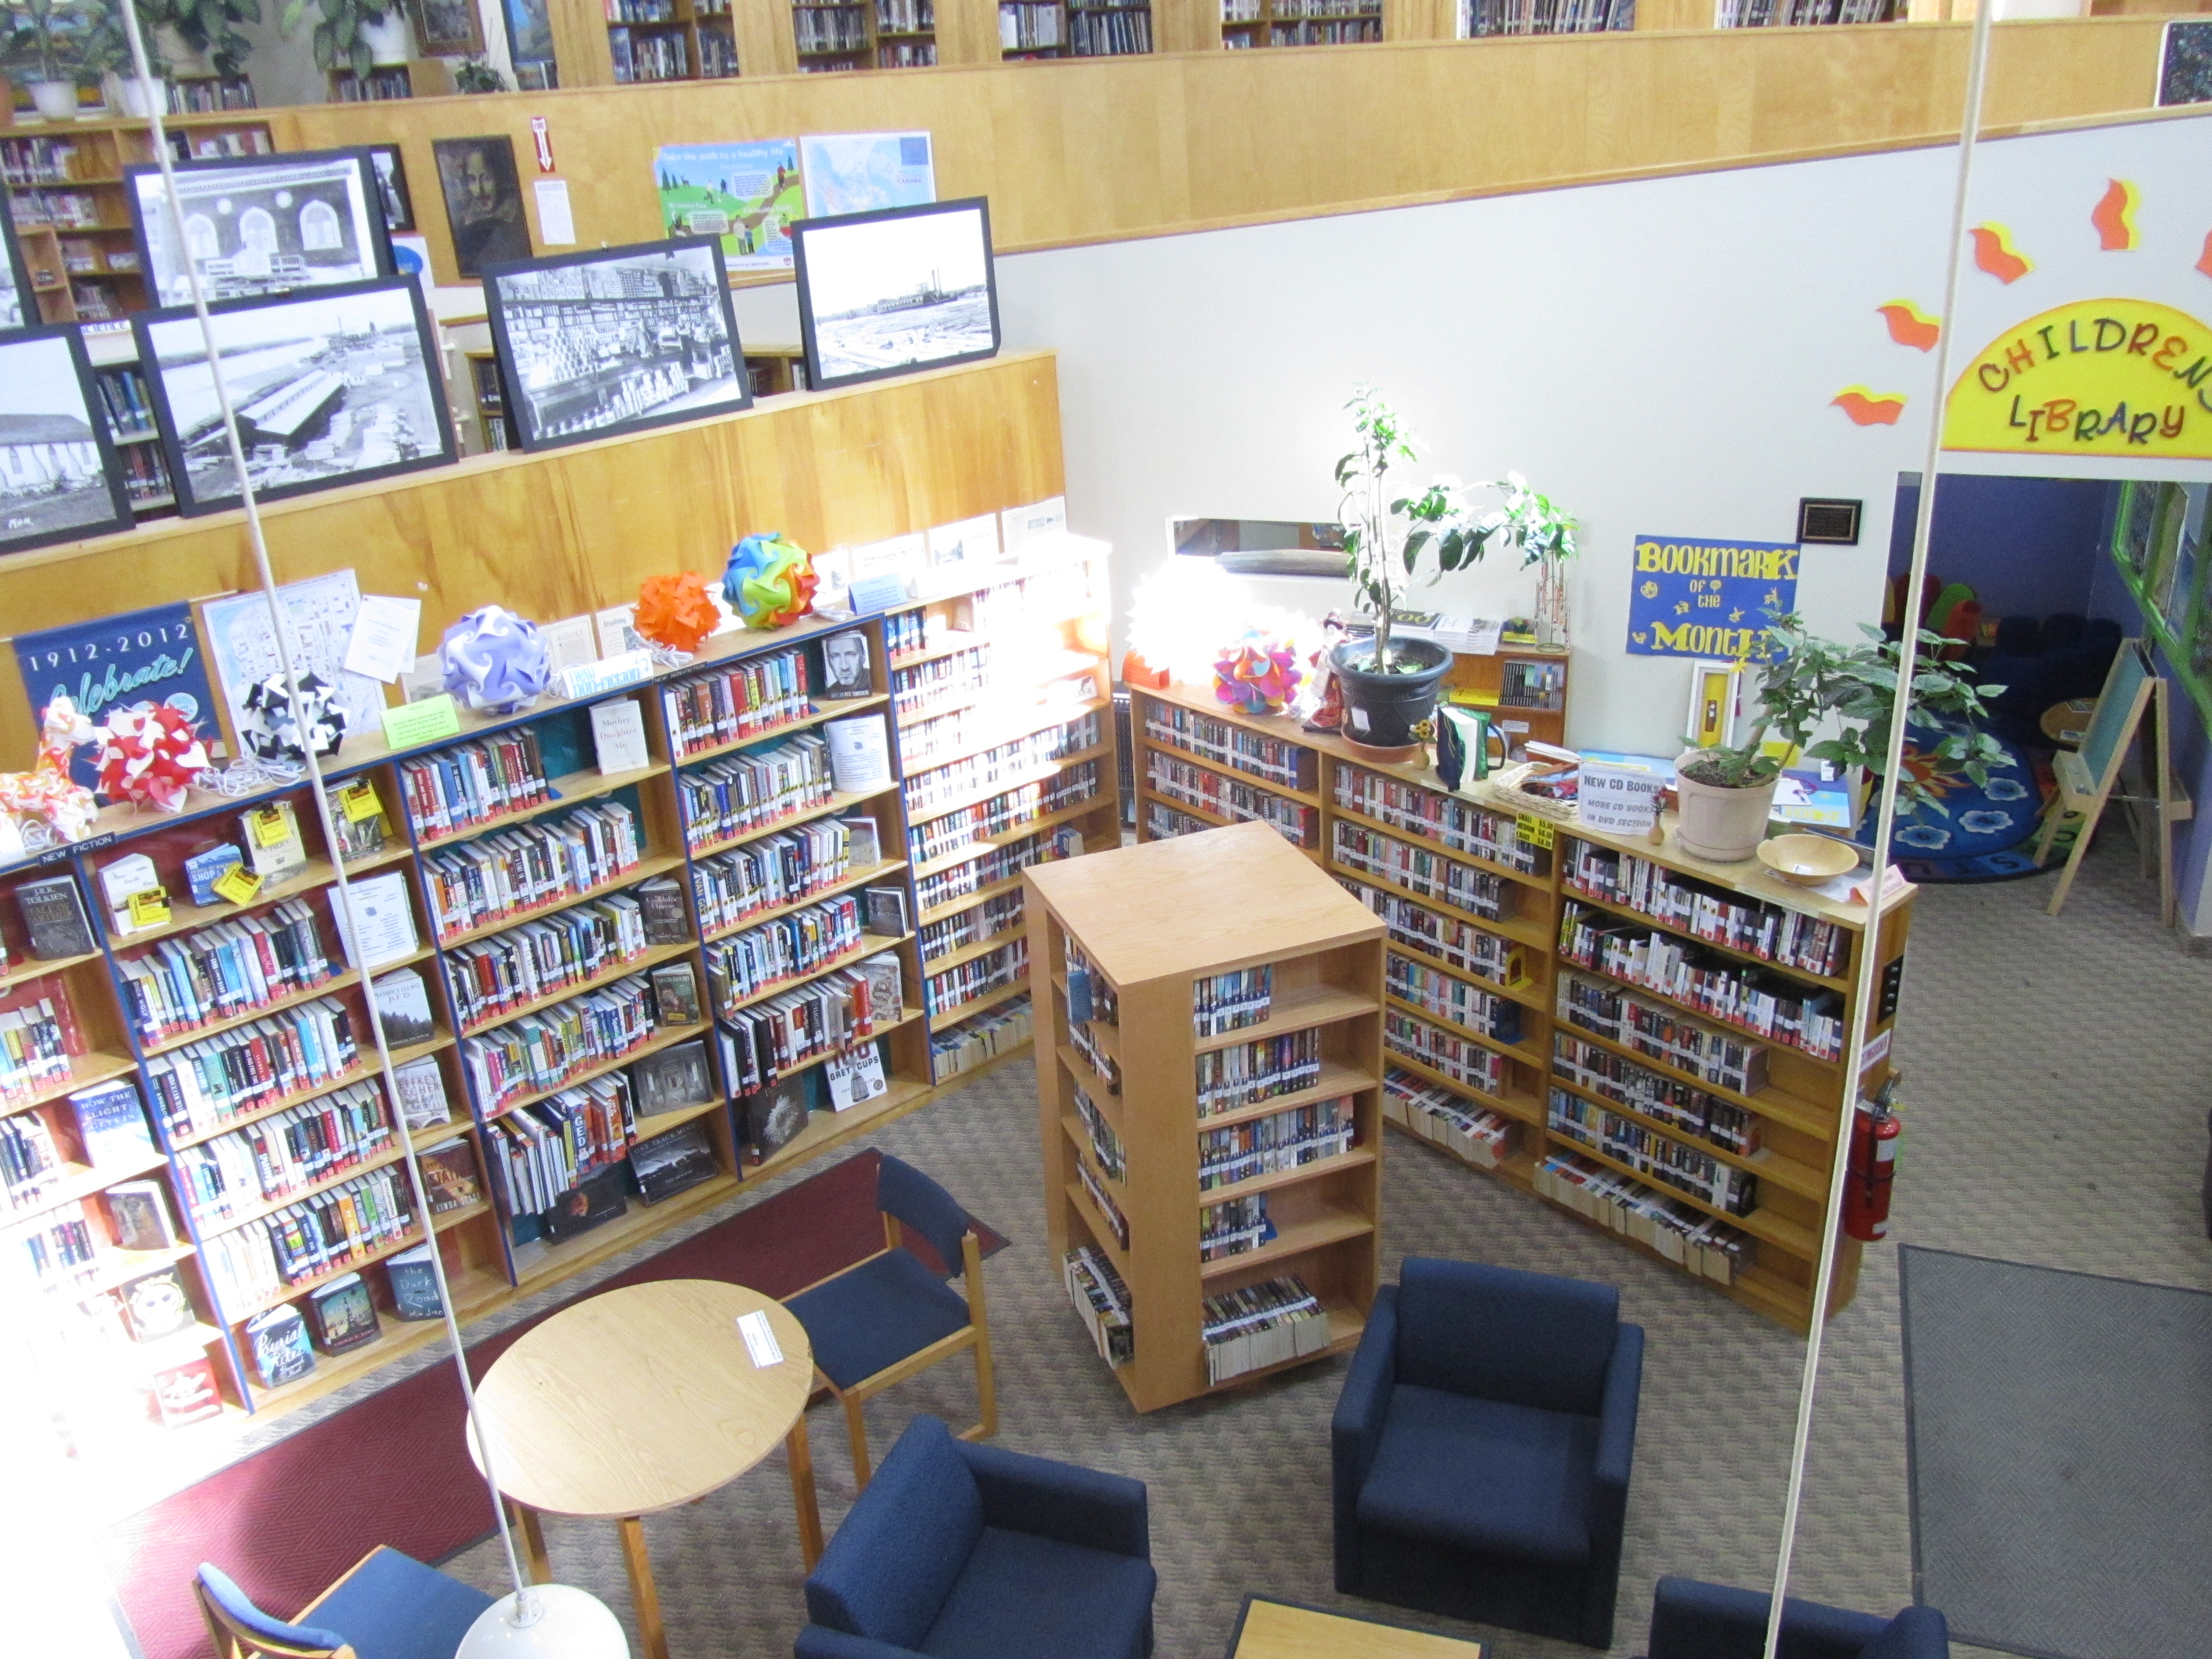 2013 09 16 The Pas Regional Library 011